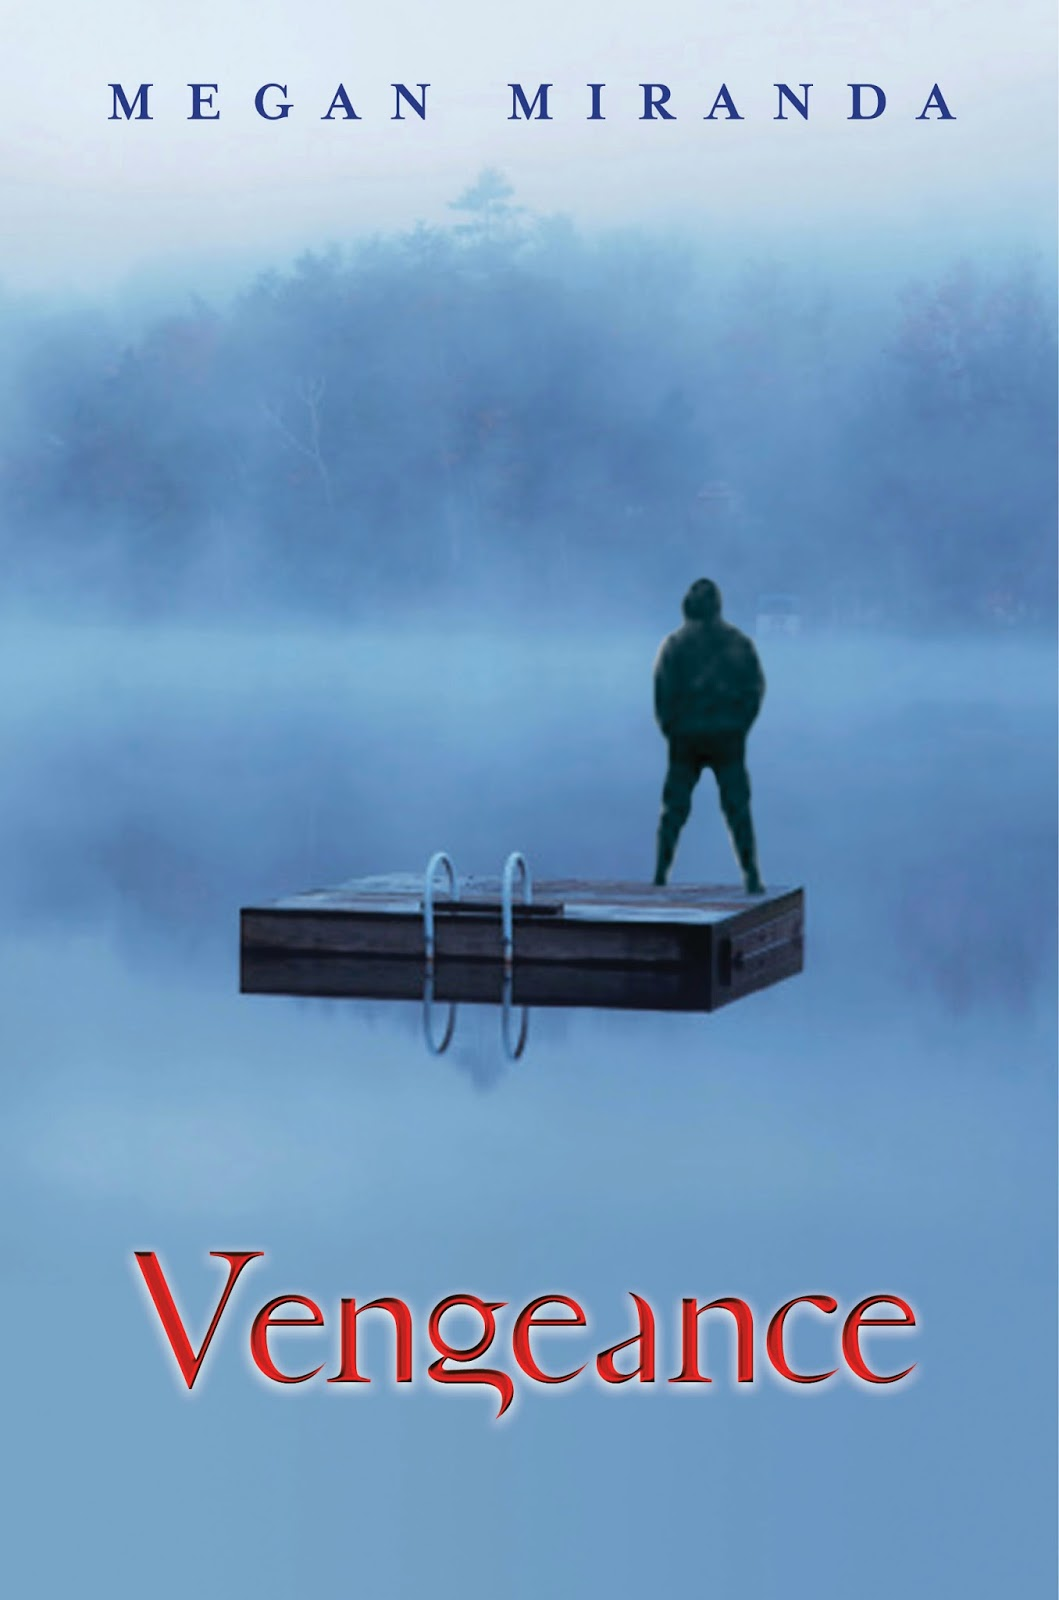 https://www.goodreads.com/book/show/17978132-vengeance